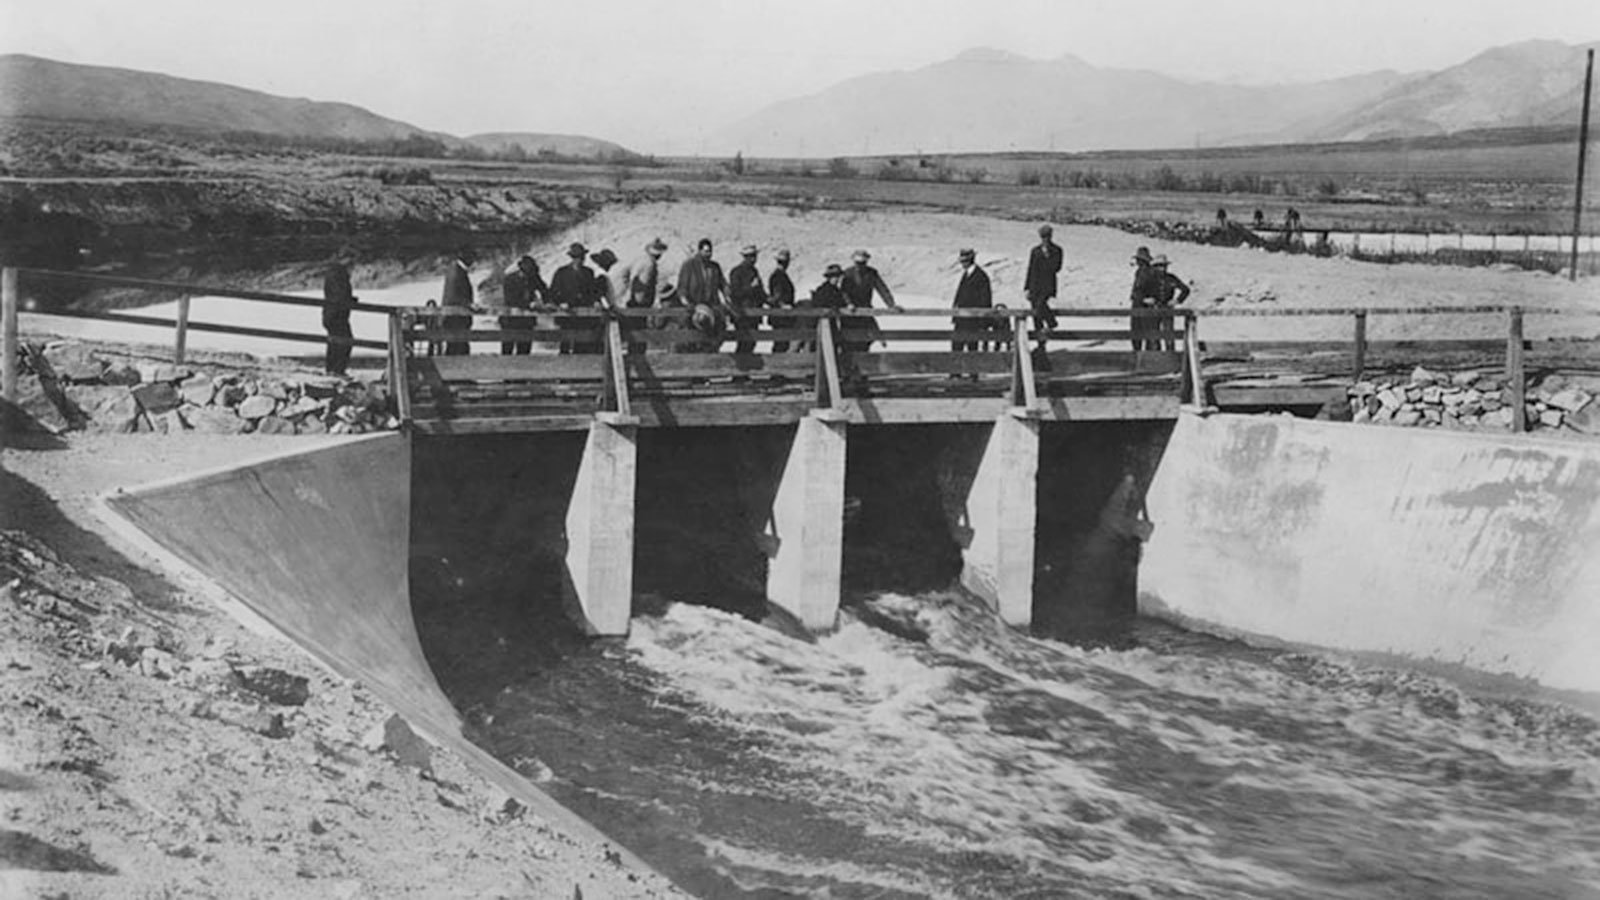 The Owens River flowing into the Los Angeles Aqueduct